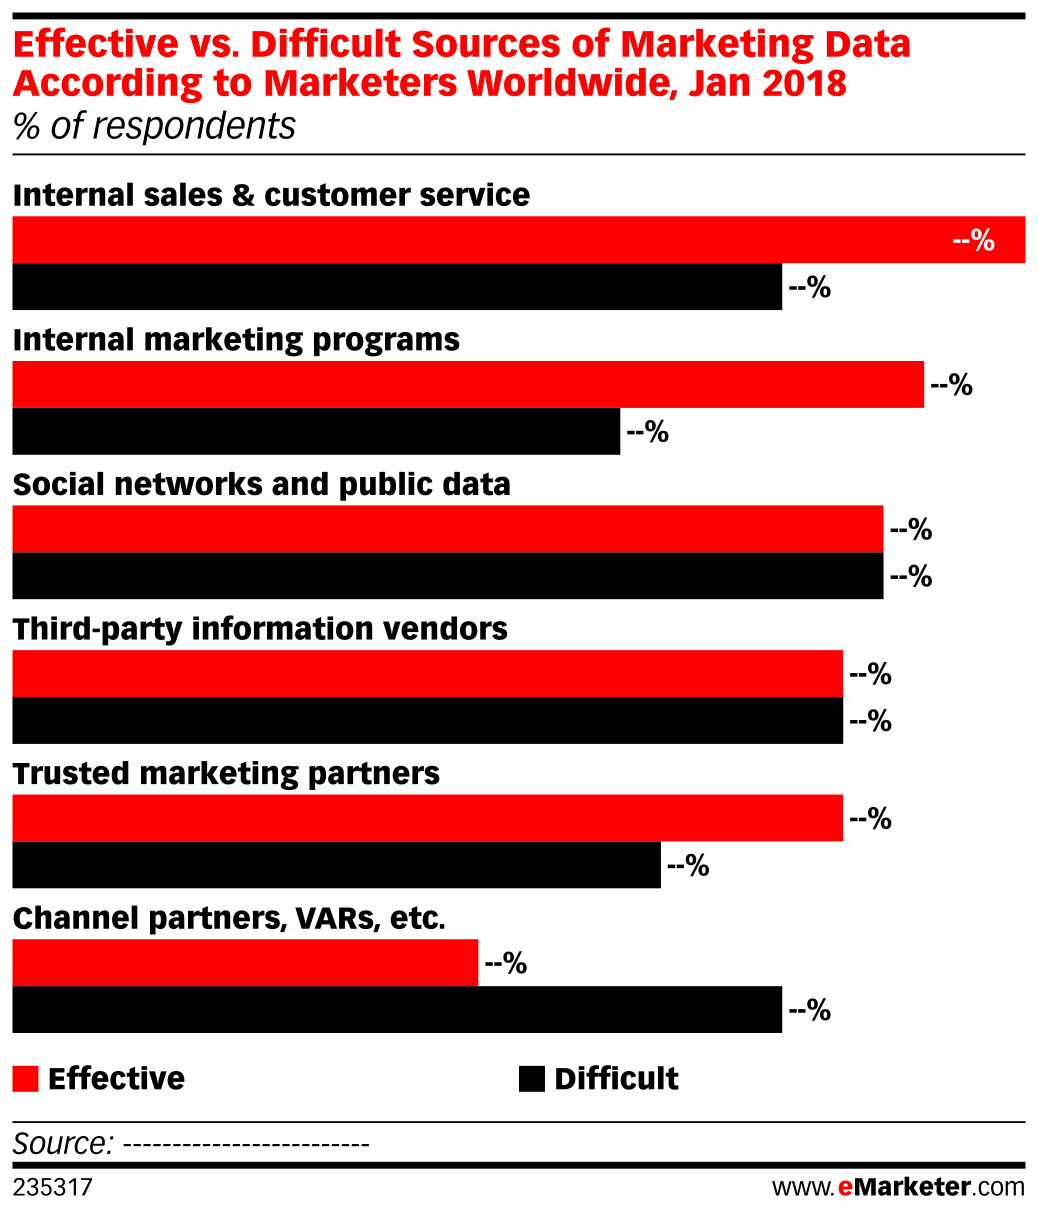 Effective vs. Difficult Sources of Marketing Data According to Marketers Worldwide, Jan 2018 (% of respondents)